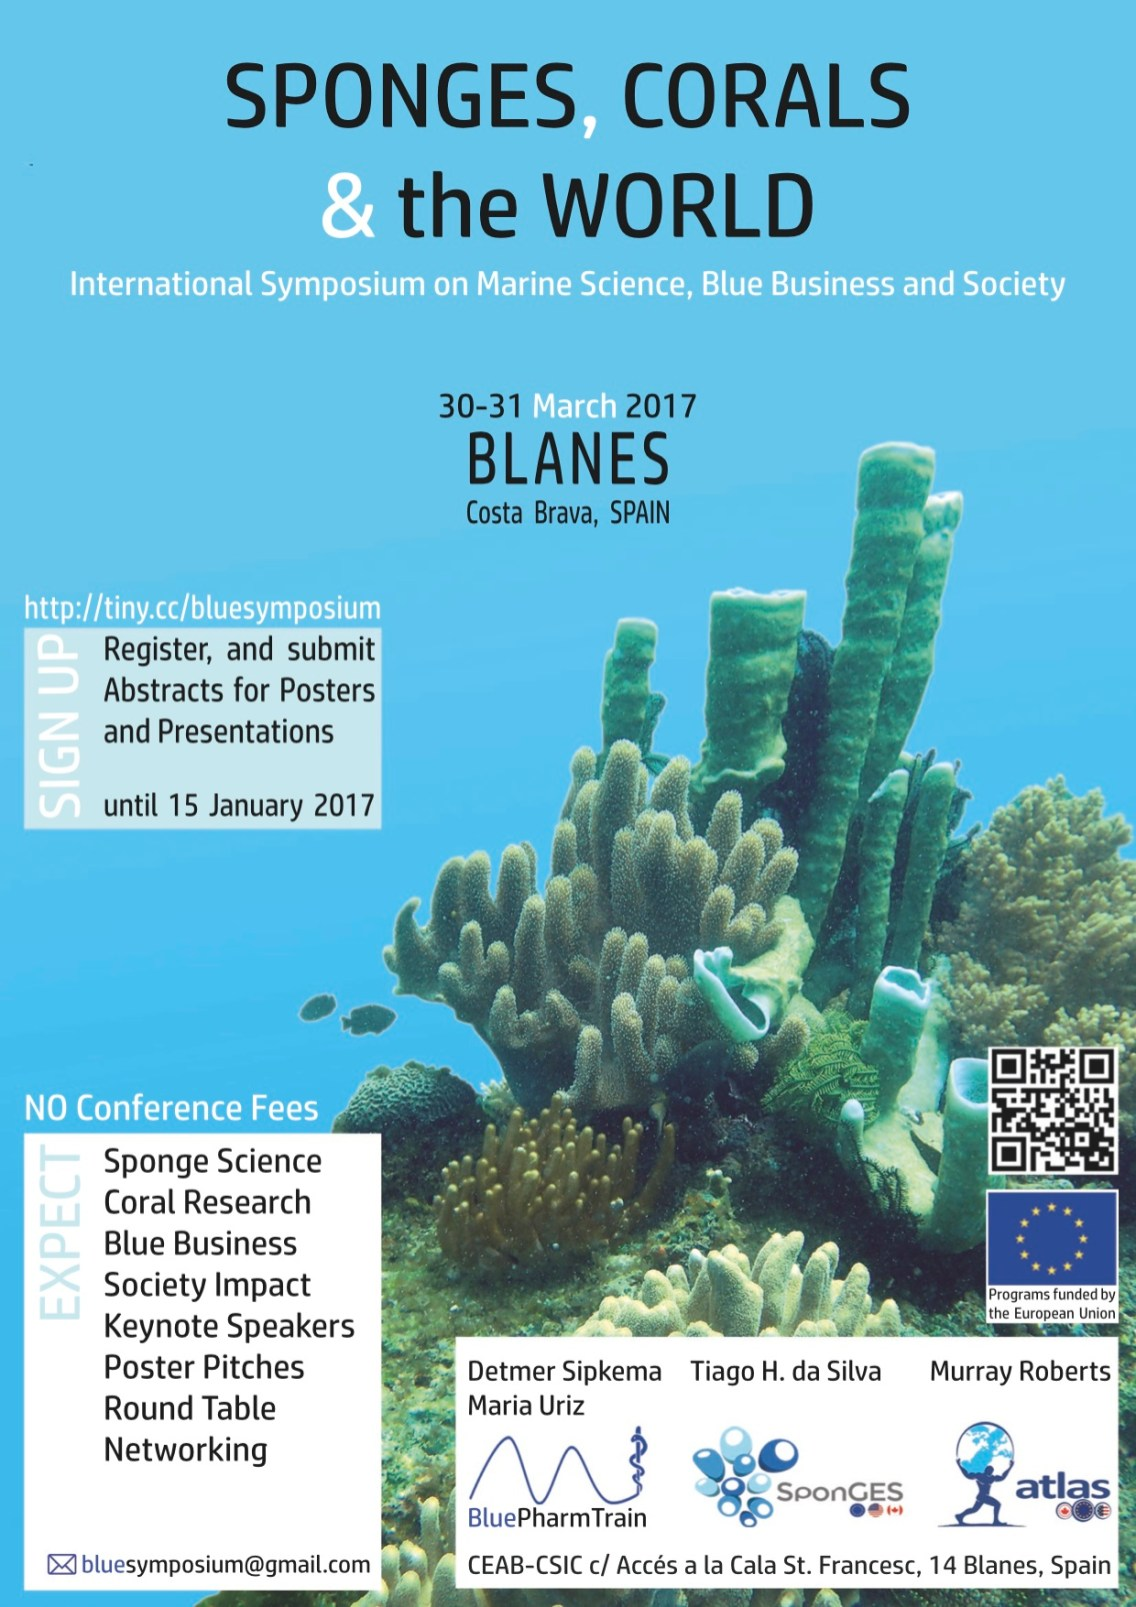 The Blue Symposium is jointly organised by the EU-funded project BluePharmTrain, SponGES and Atlas.